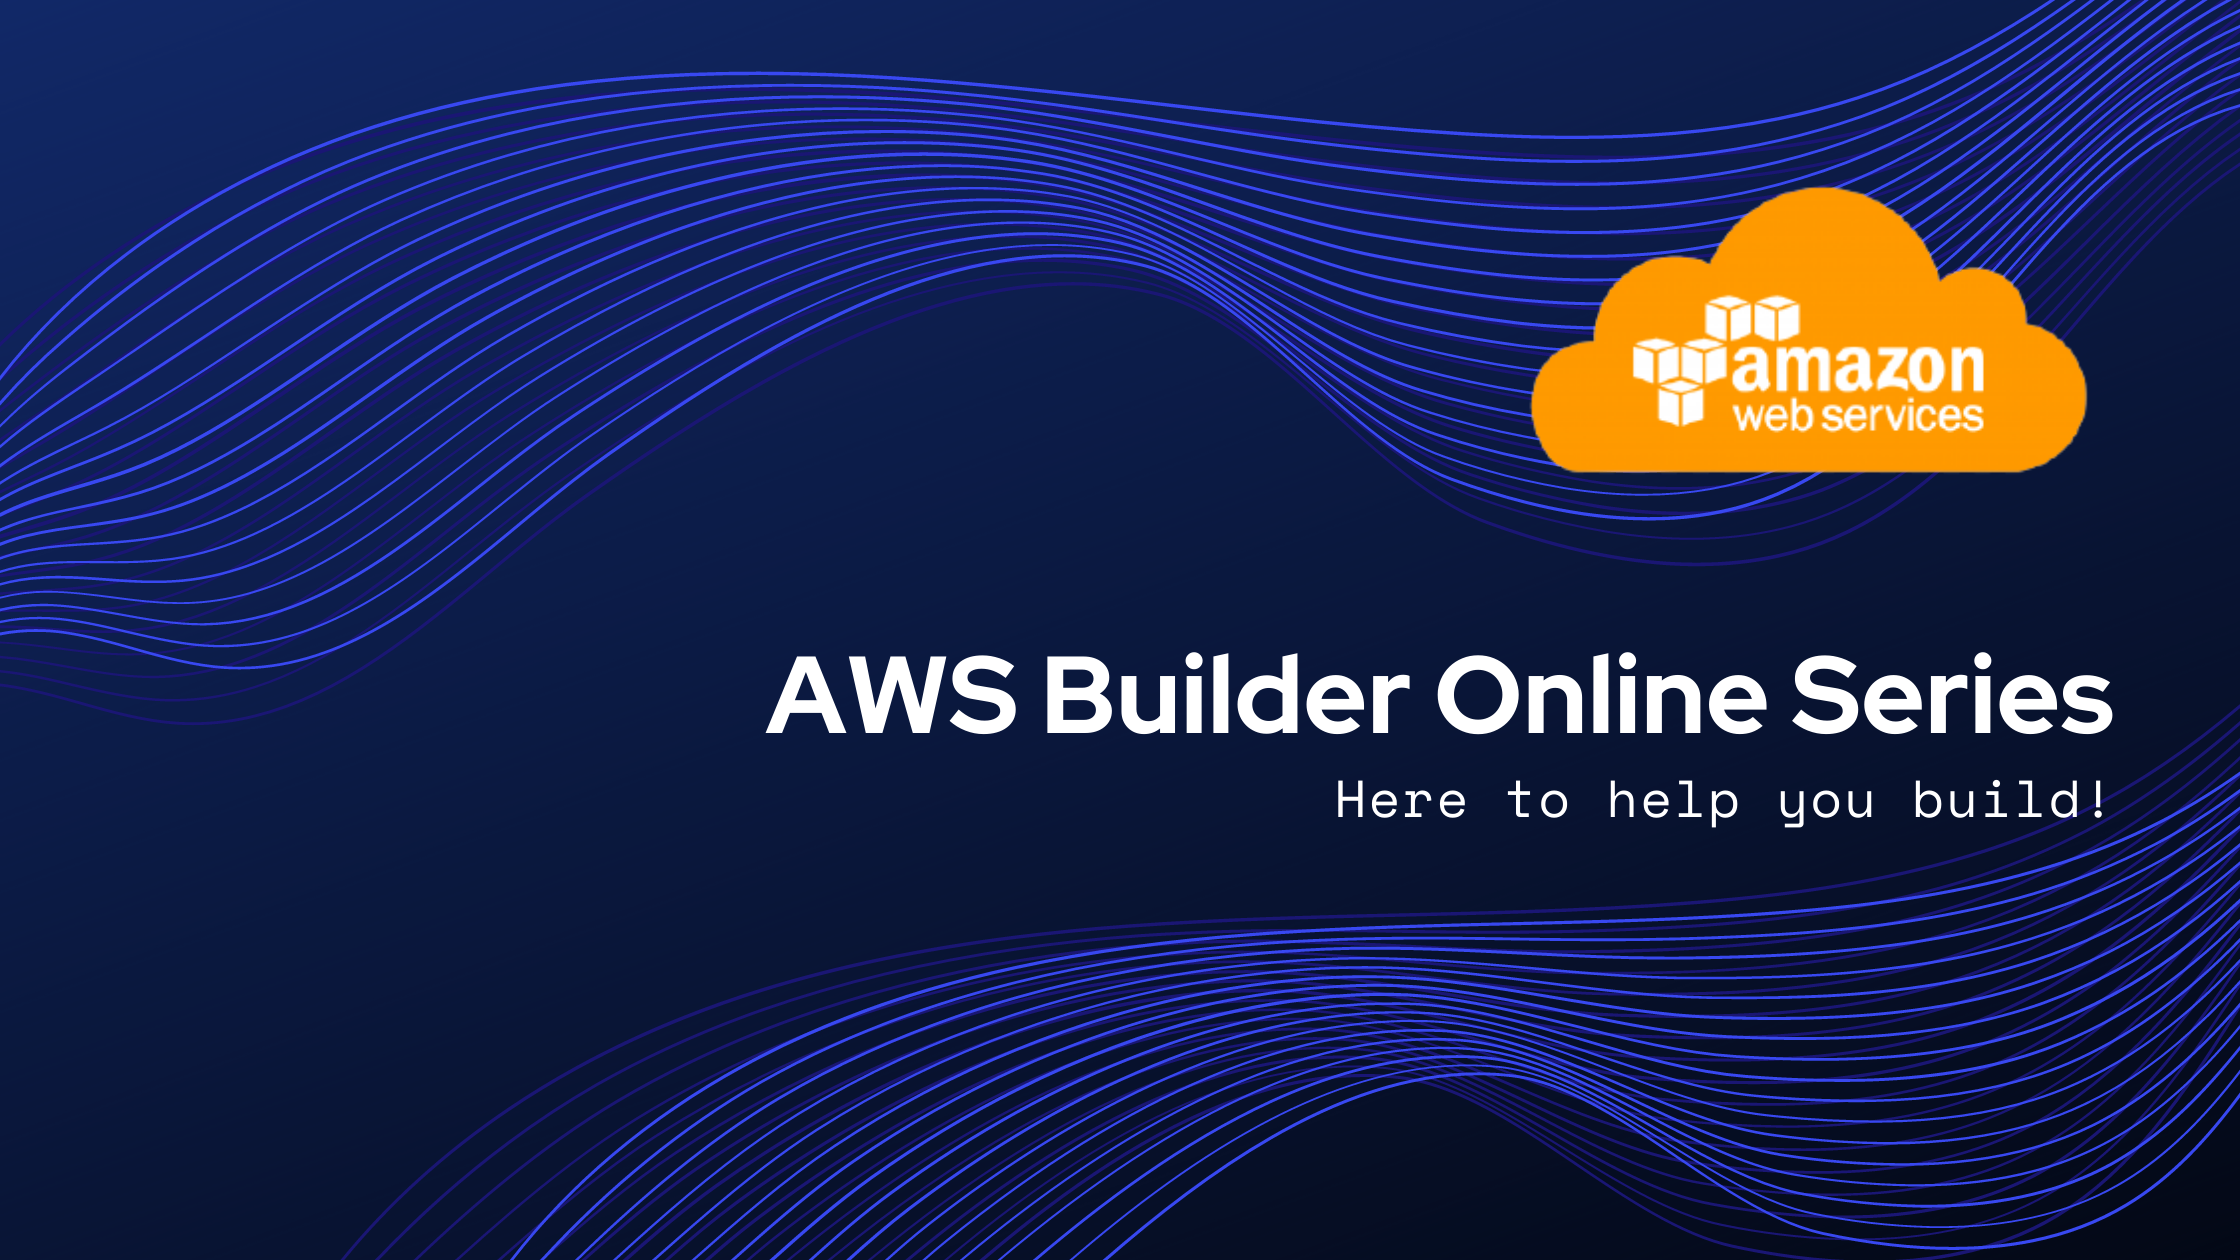 AWS Builders Online Series